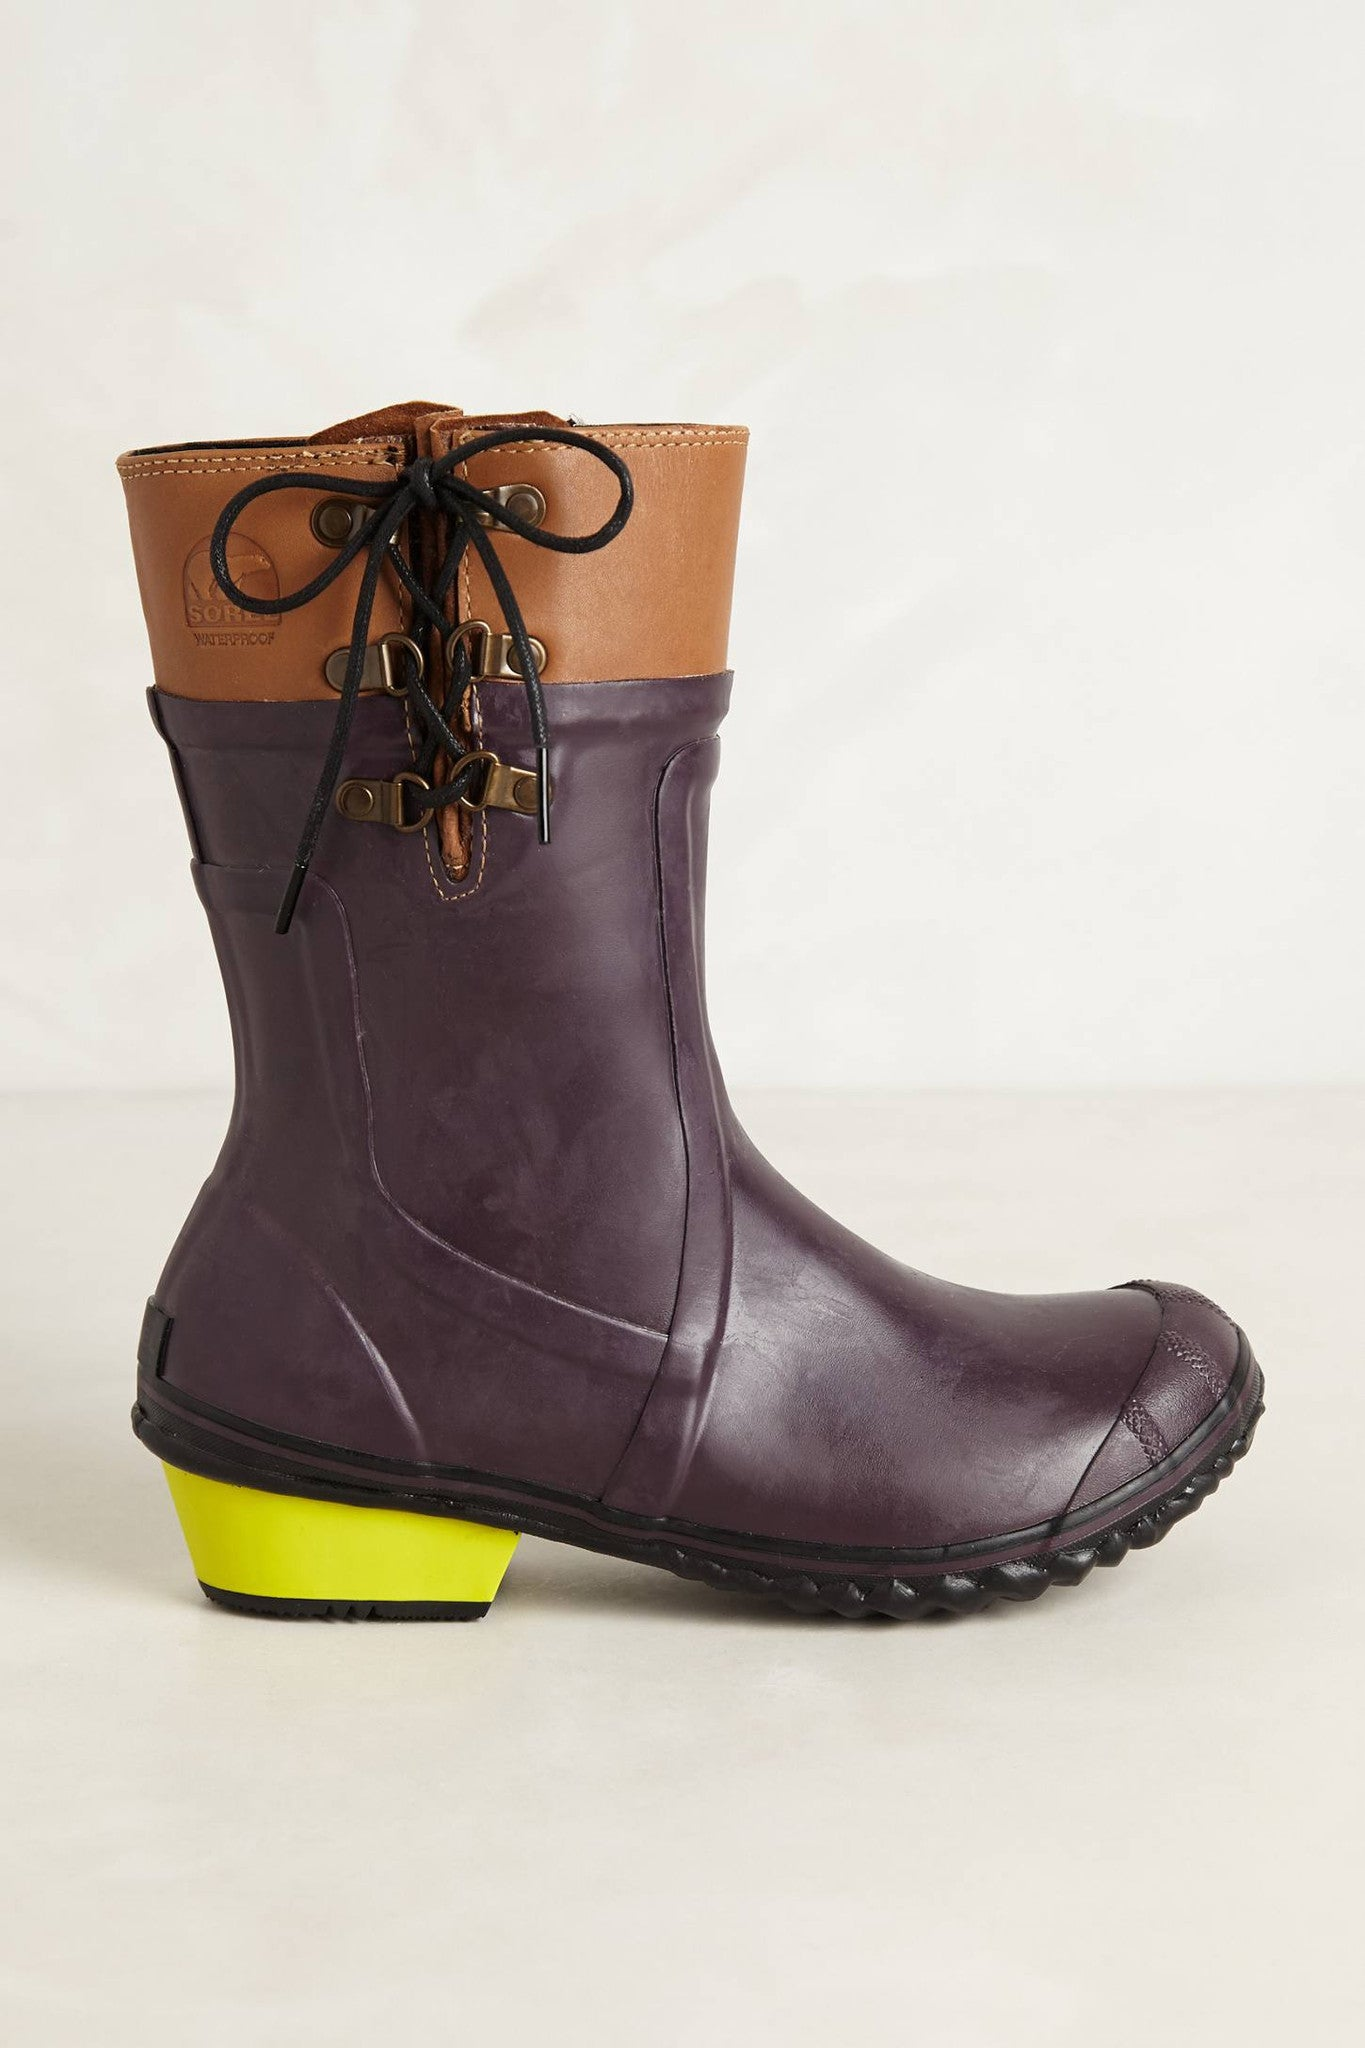 Conquest Carly Glow Boots